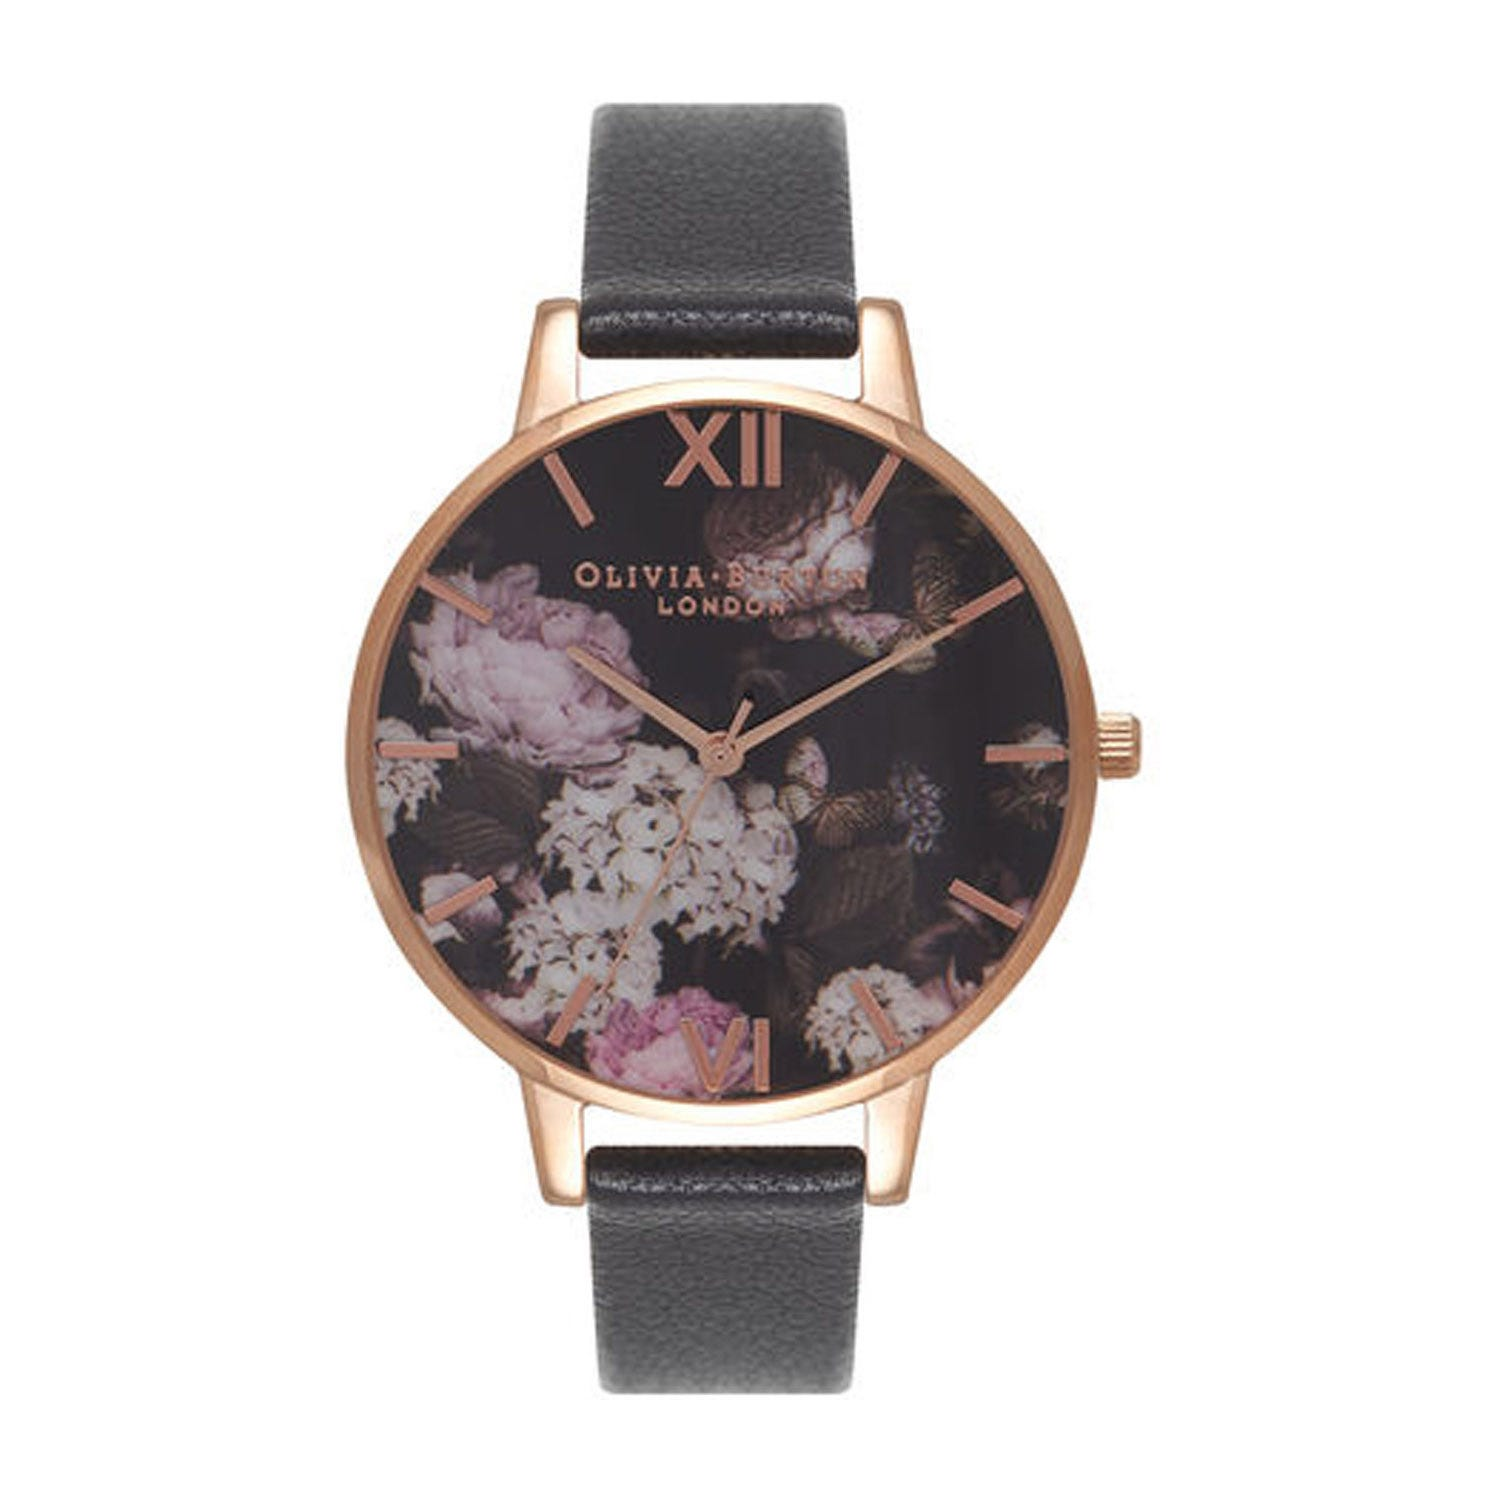 Olivia Burton Signature Floral Rose Gold-Toned & Black Leather Ladies' Watch